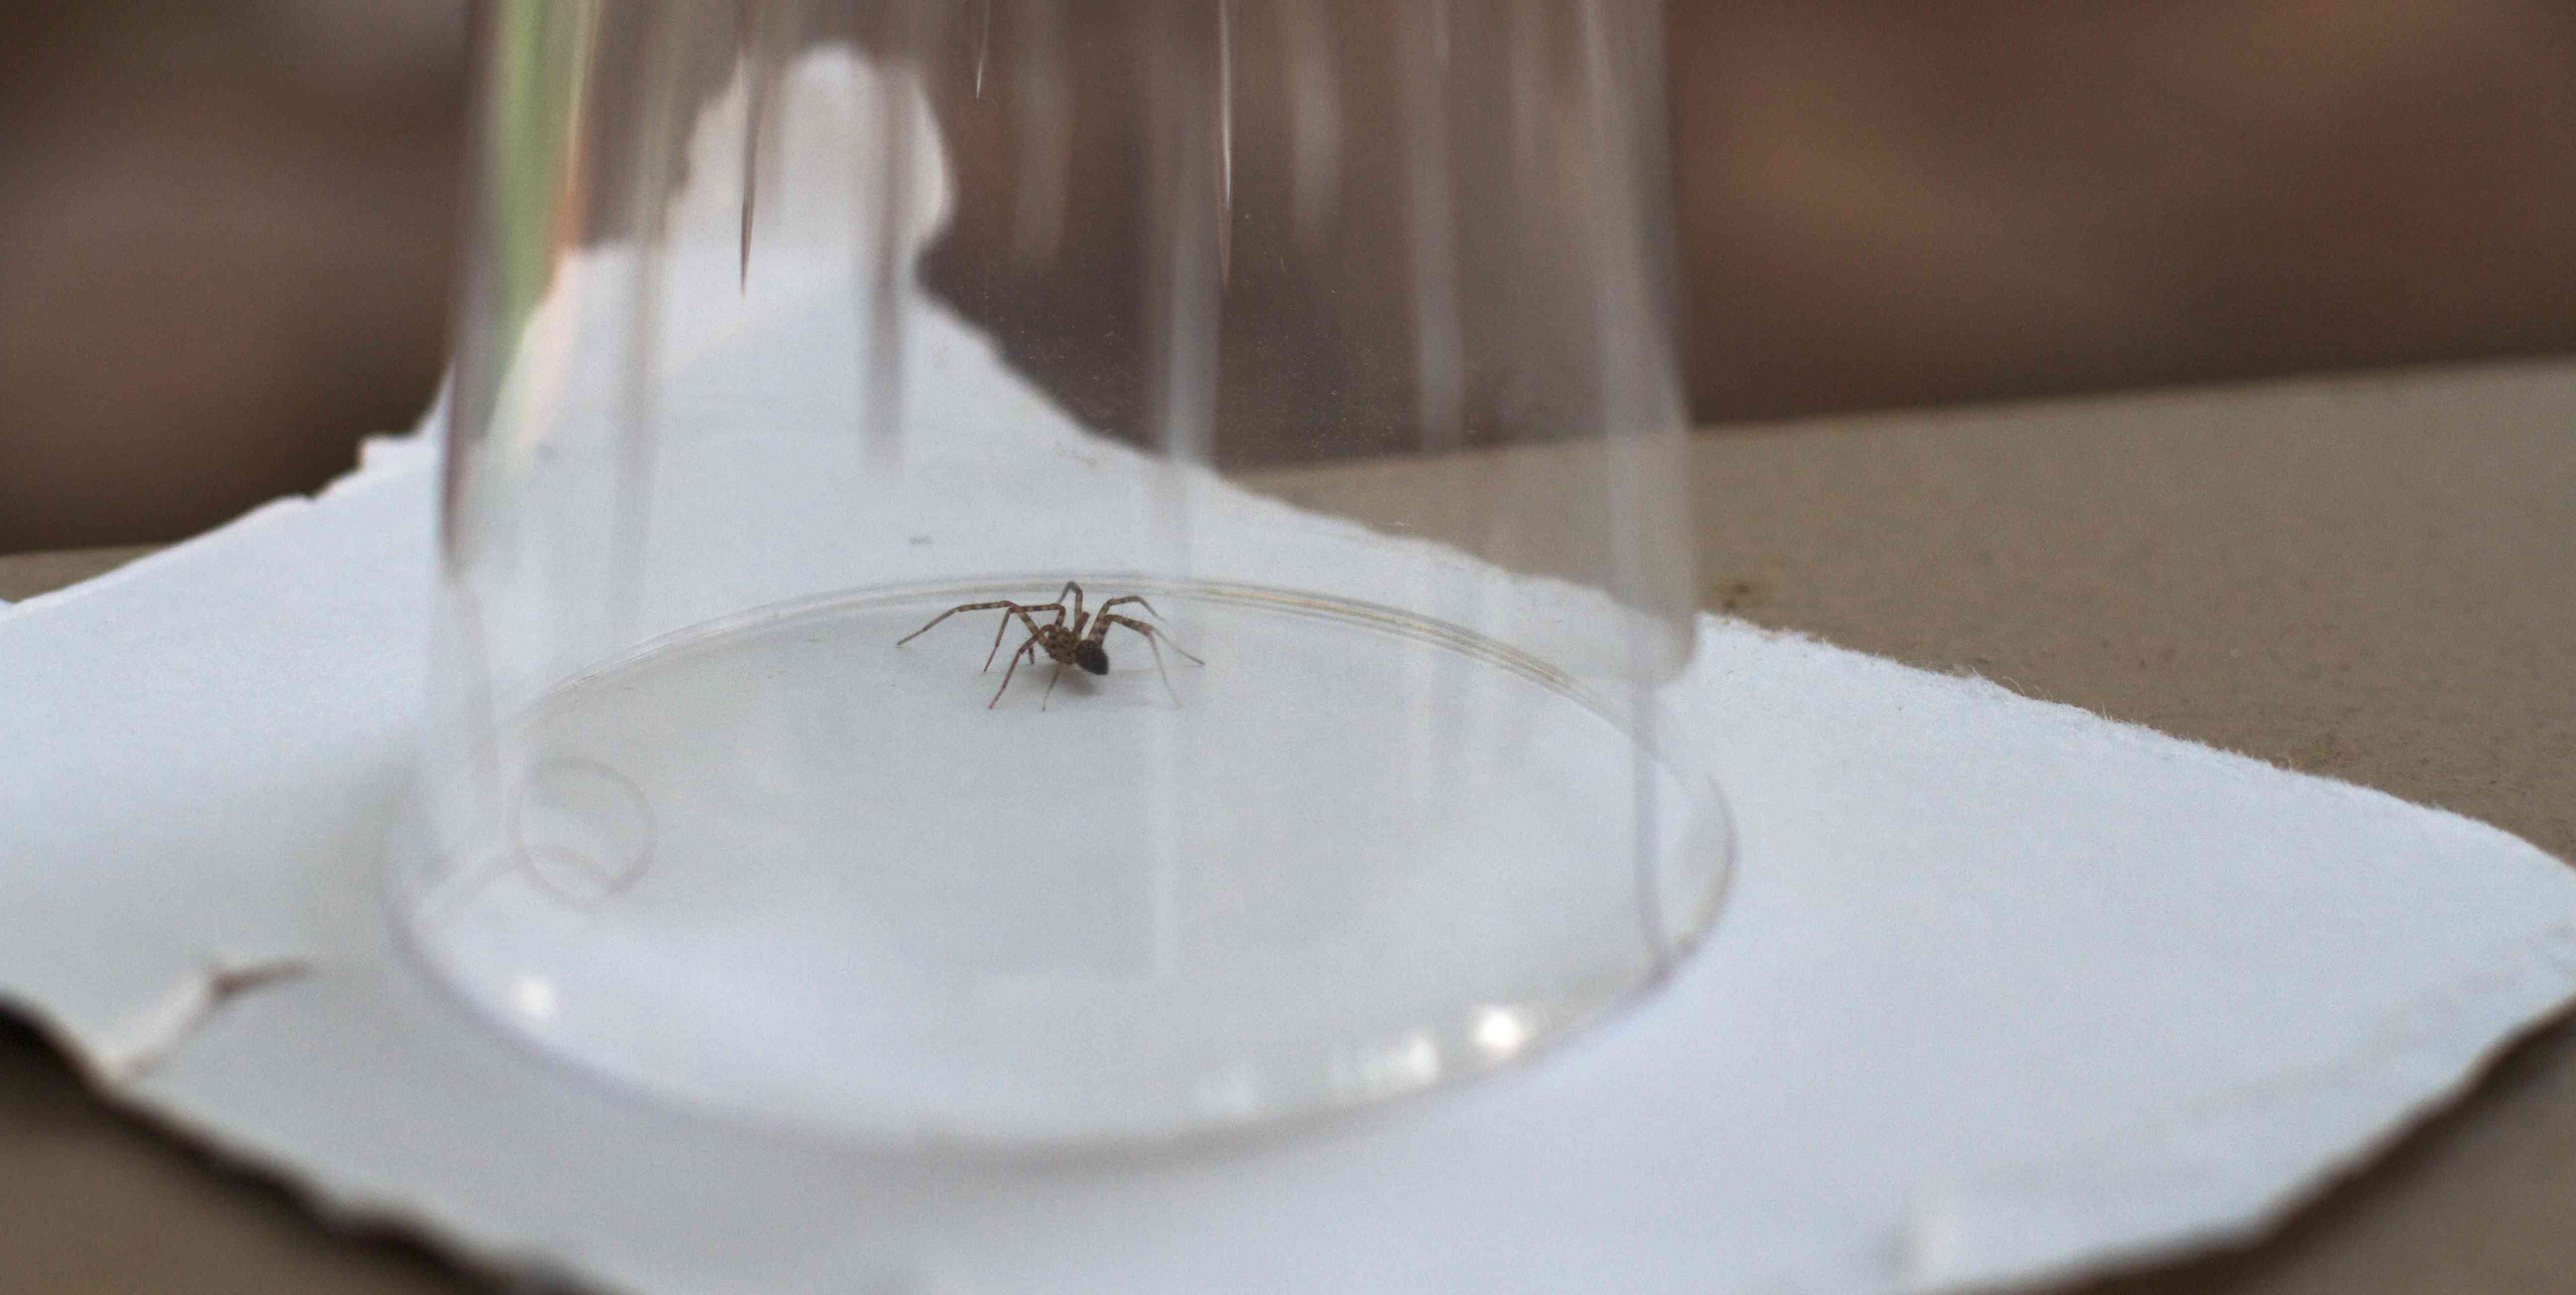 spider trapped in a cup or glass